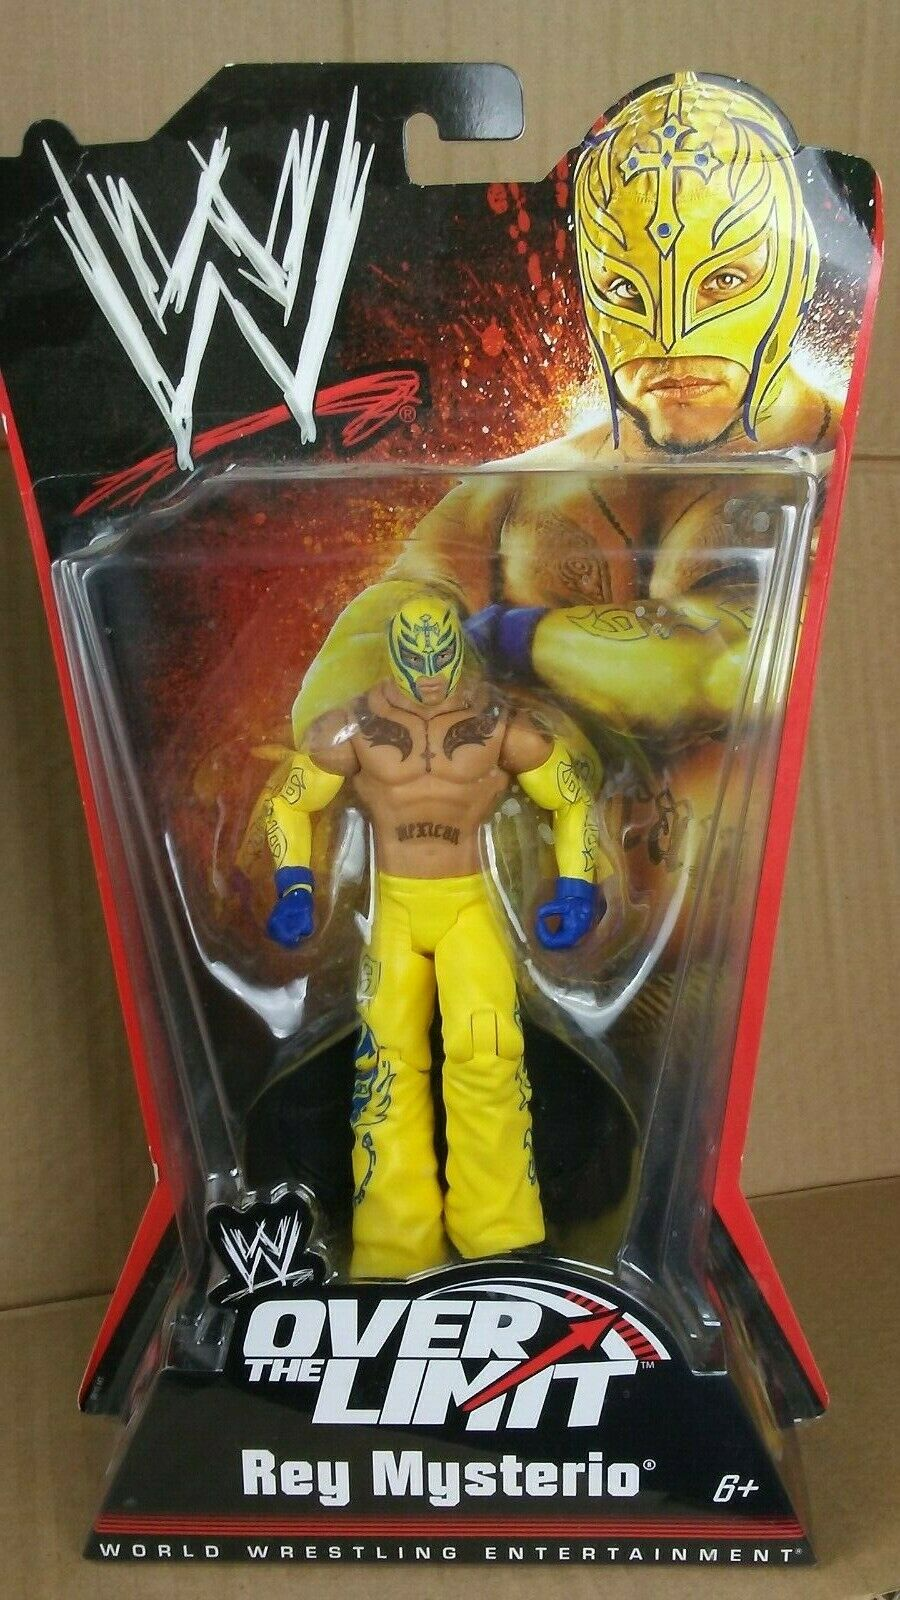 NEW MATTEL WWE OVER THE LIMIT REY MYSTERIO ACTION FIGURE